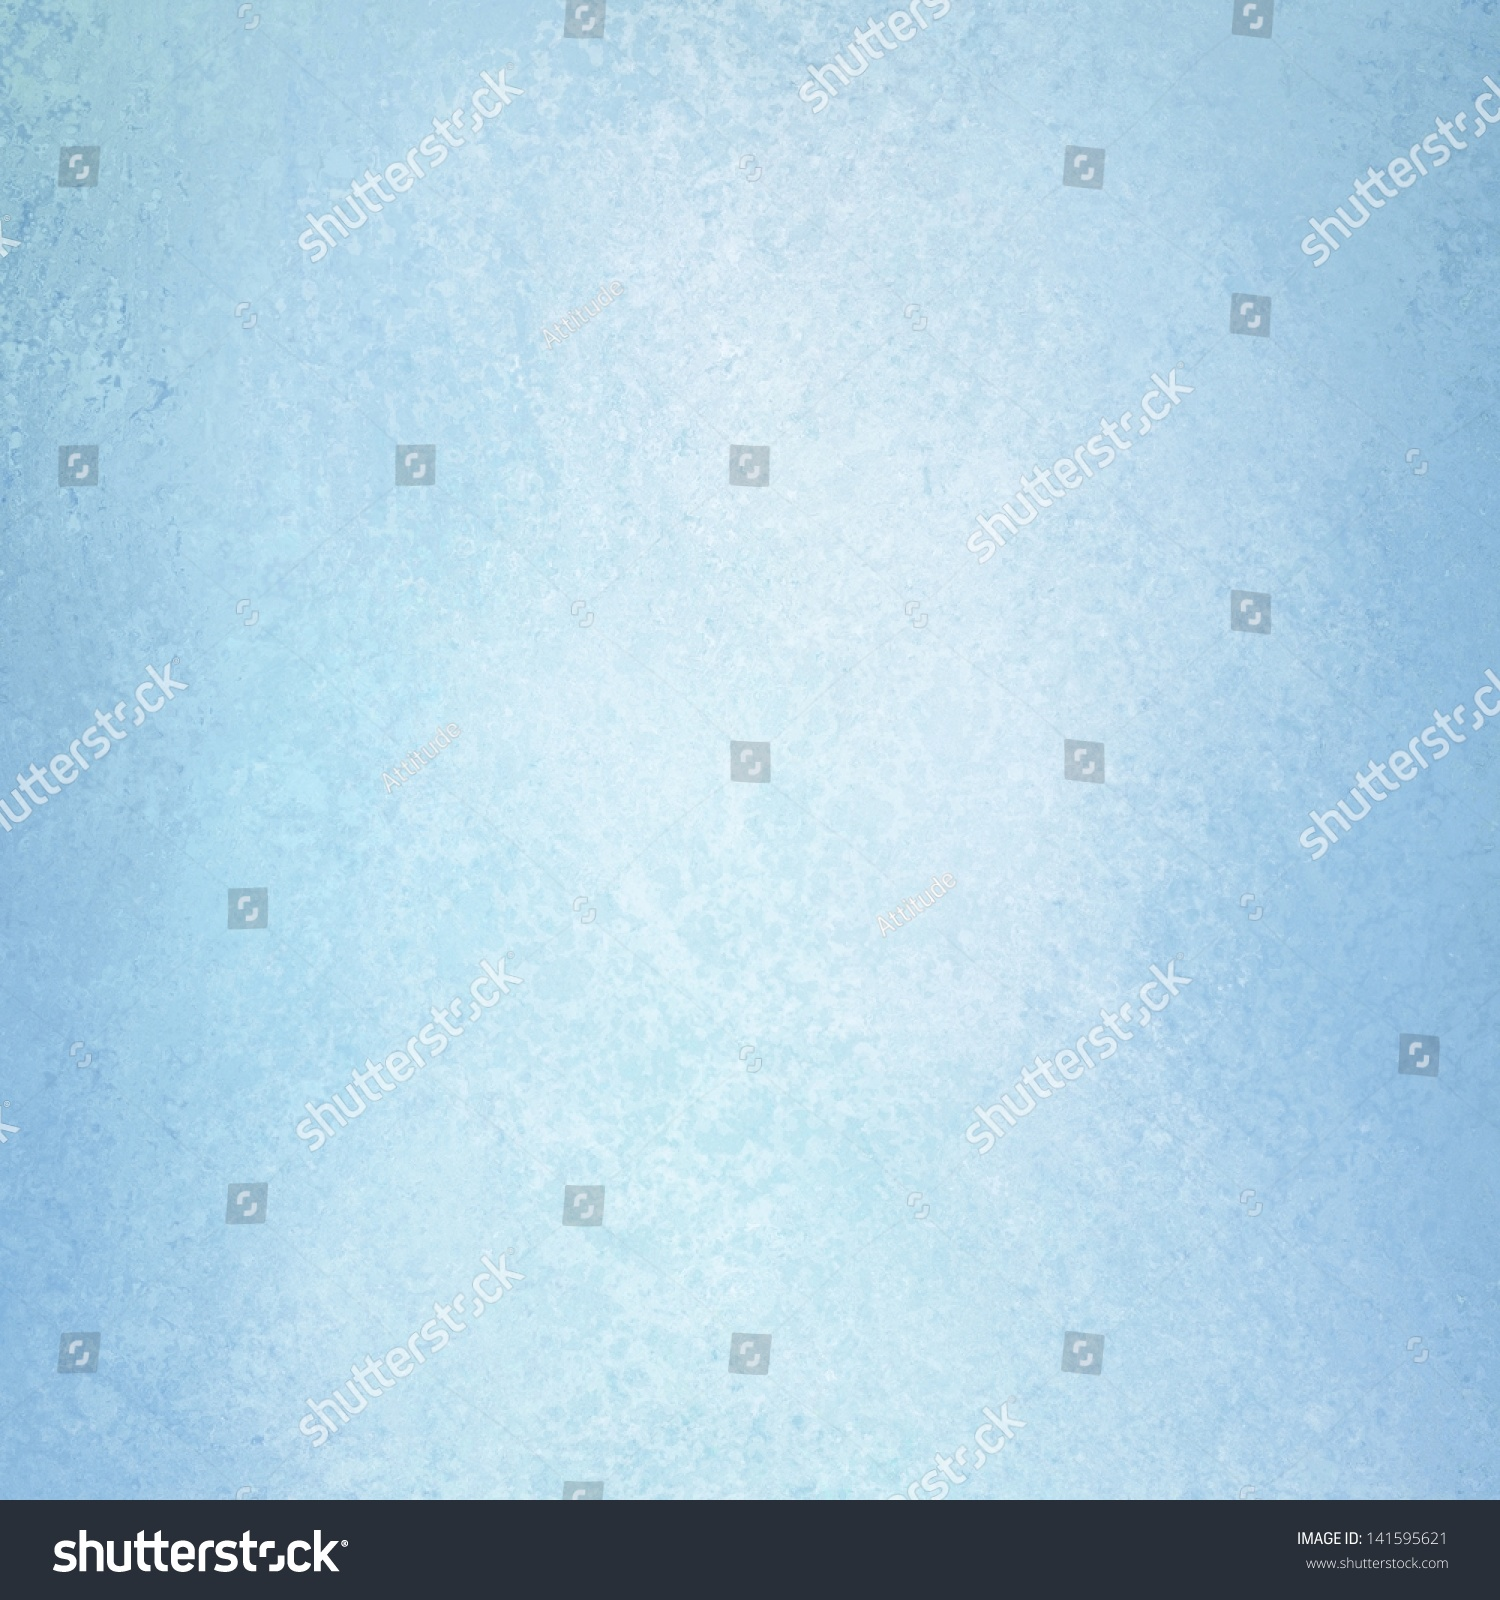 abstract blue background pastel light color stock illustration